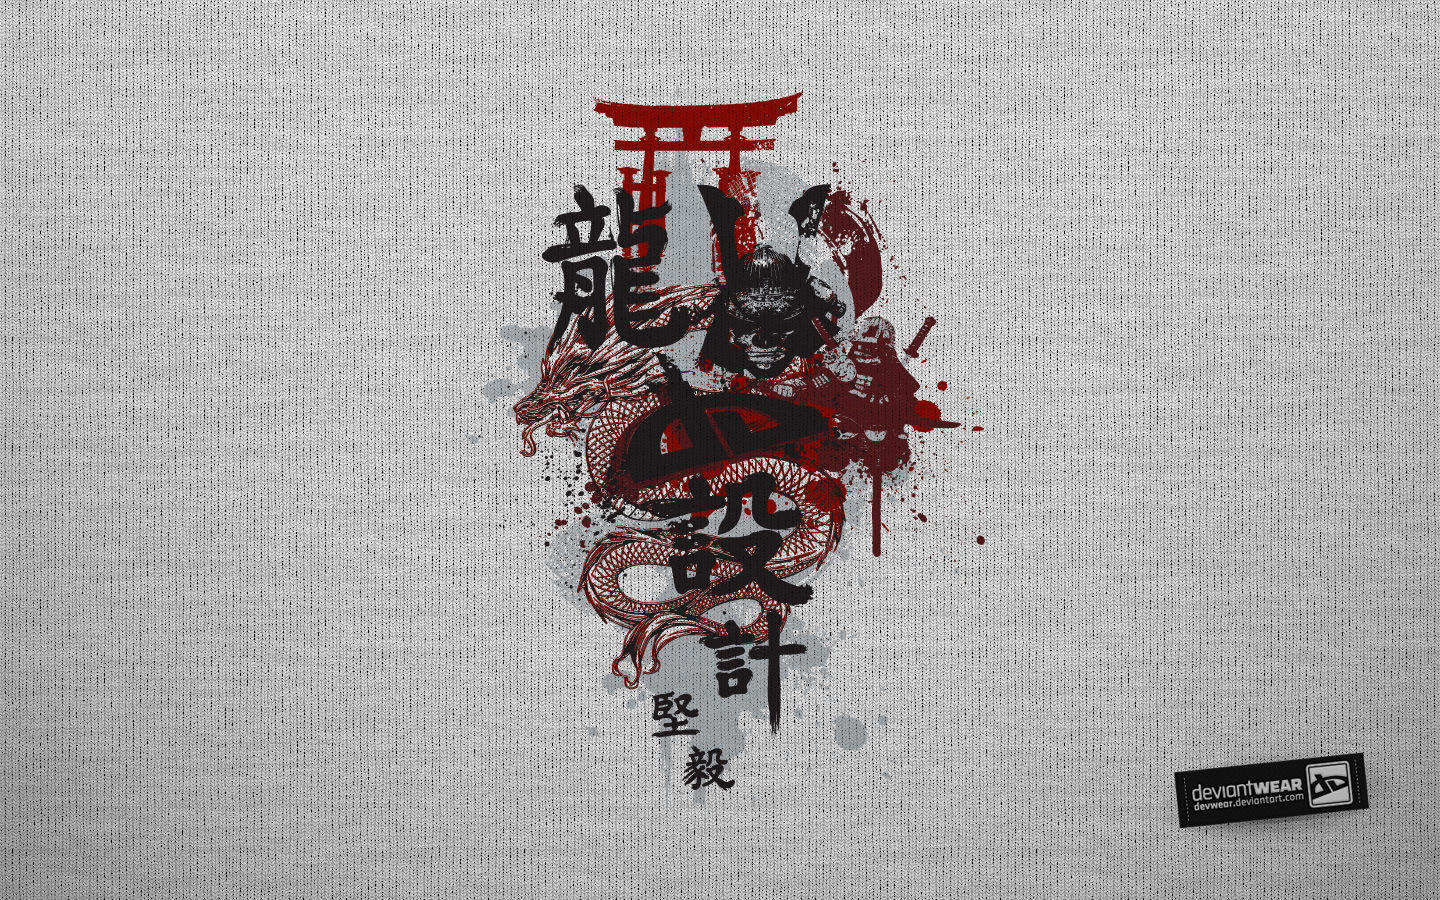 Samurai wallpaper | 1440x900 | #43910